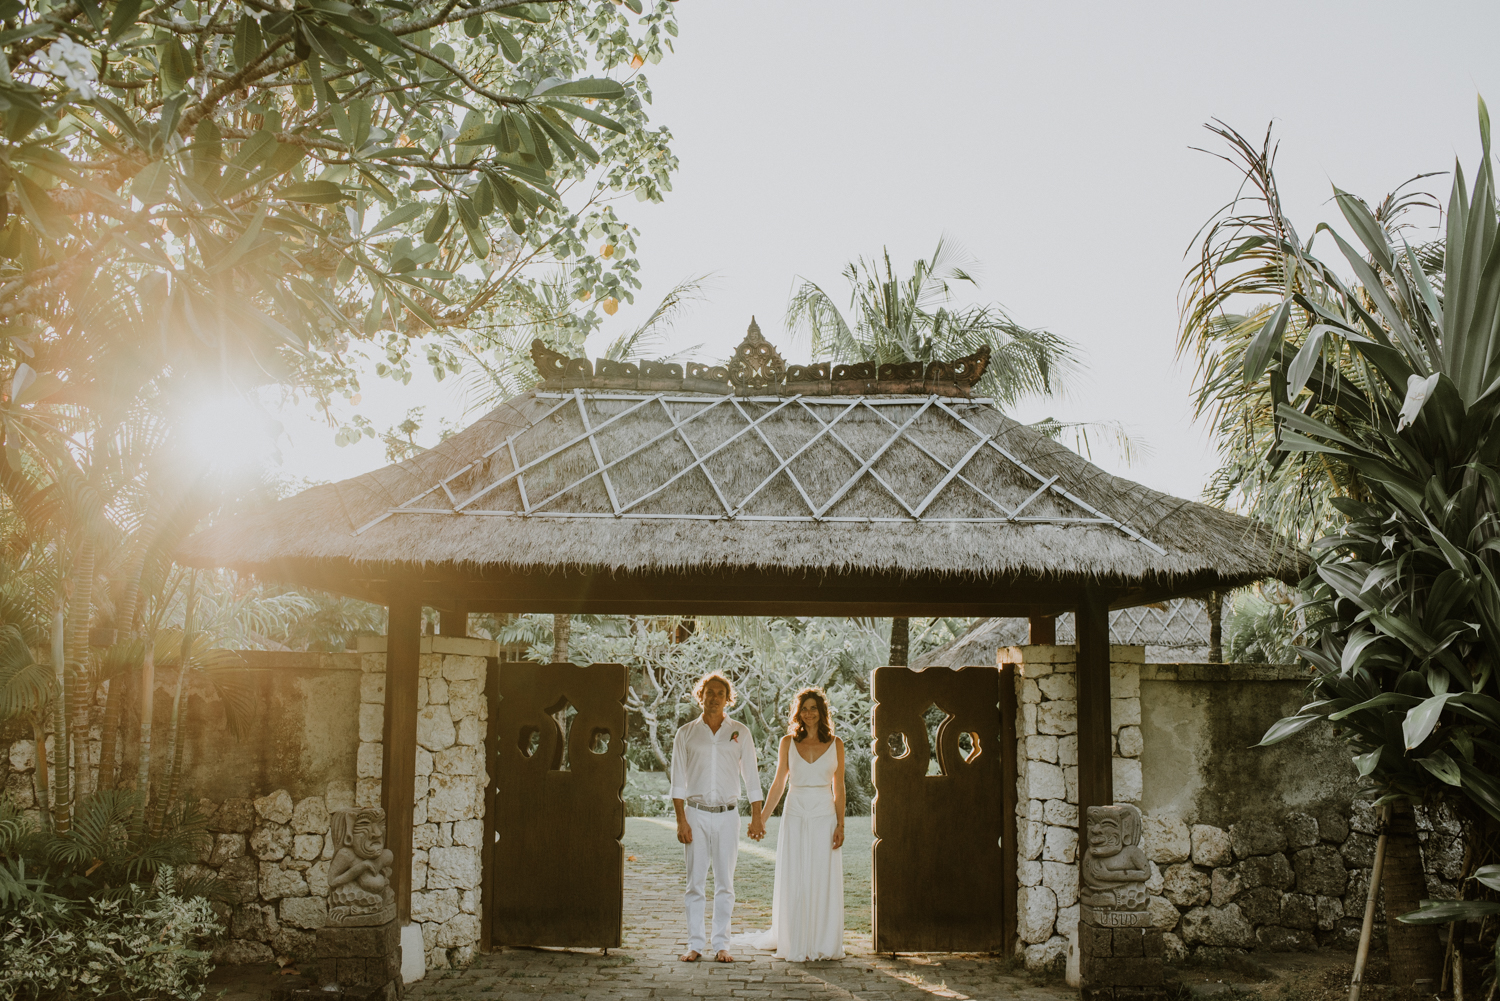 baliweddingdestination-weddinginbali-baliweddingphotographer-diktatphotography-bayuhsabbha-uluwatu-bali-58